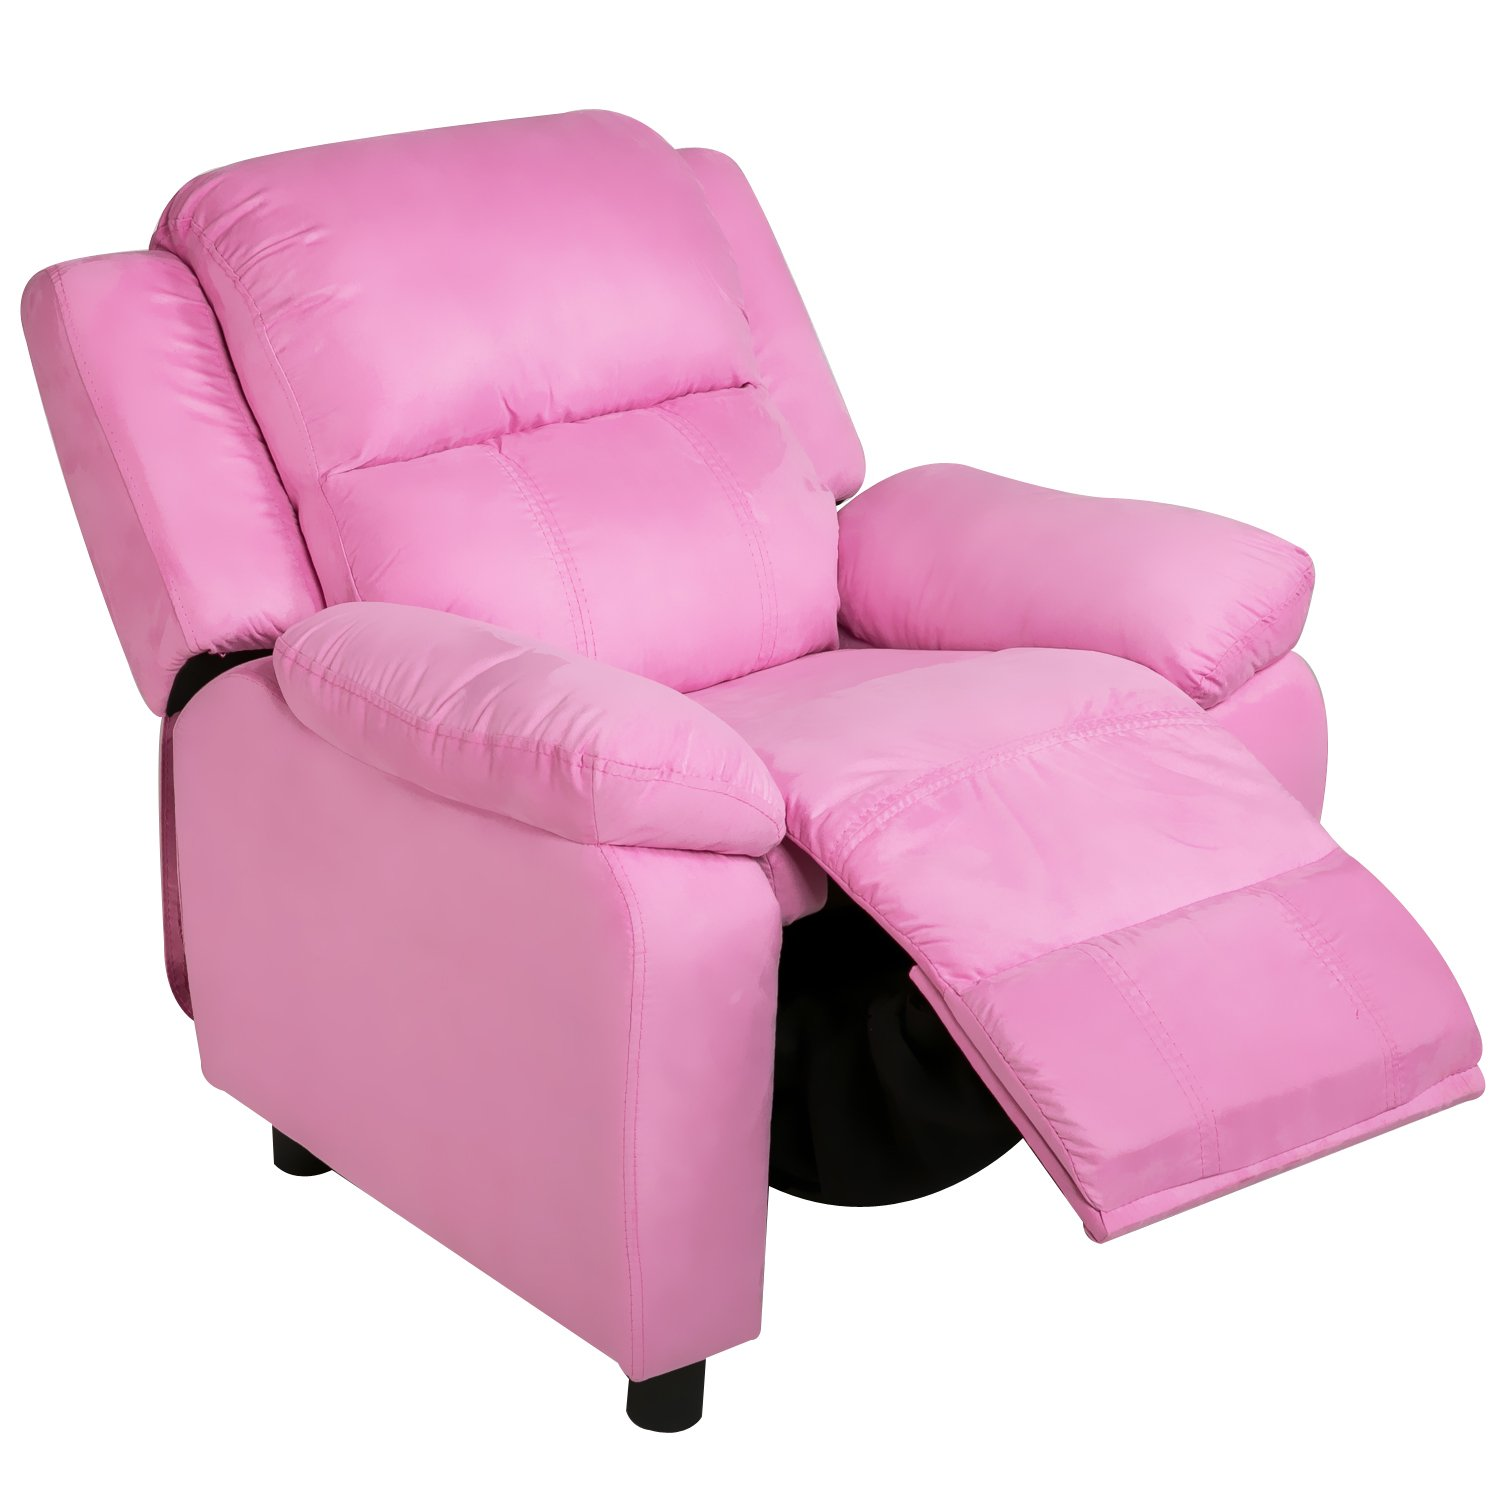 Harper&Bright Designs Kids Recliner with Arms Fabric Sofa Chair for Child (Pink Fabric)